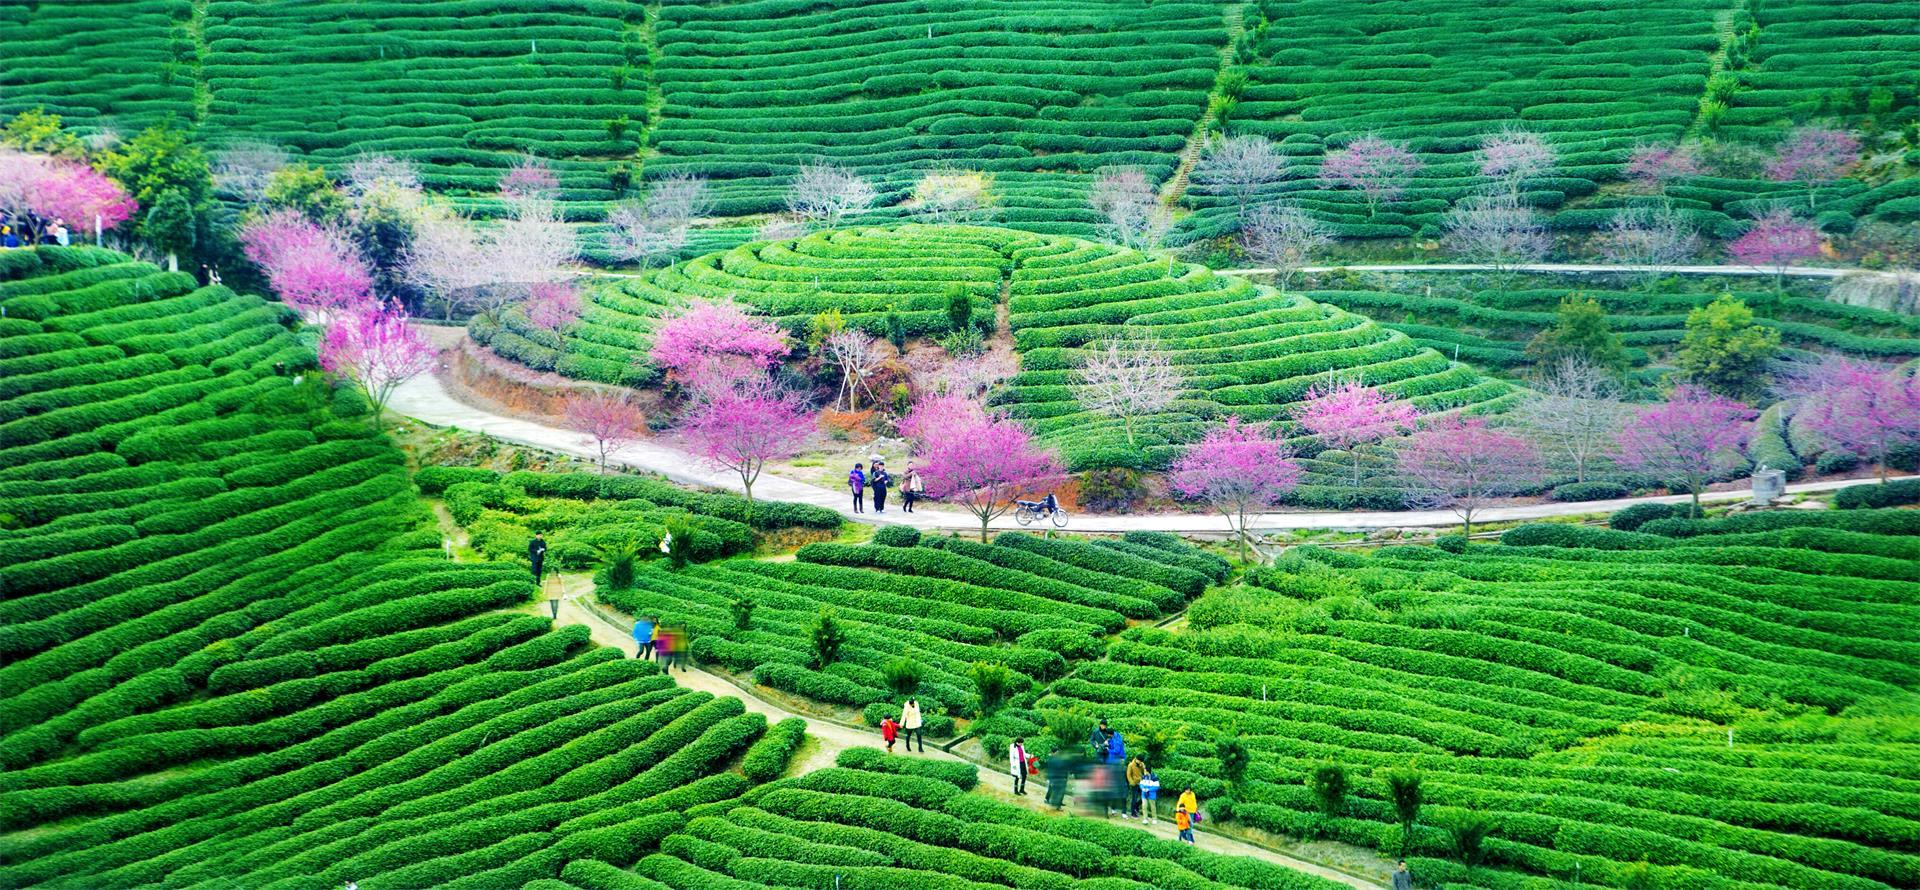 PhotoVivo Honor Mention - Jing Lai (China)  Cherry Blossoms In Tea Plantation